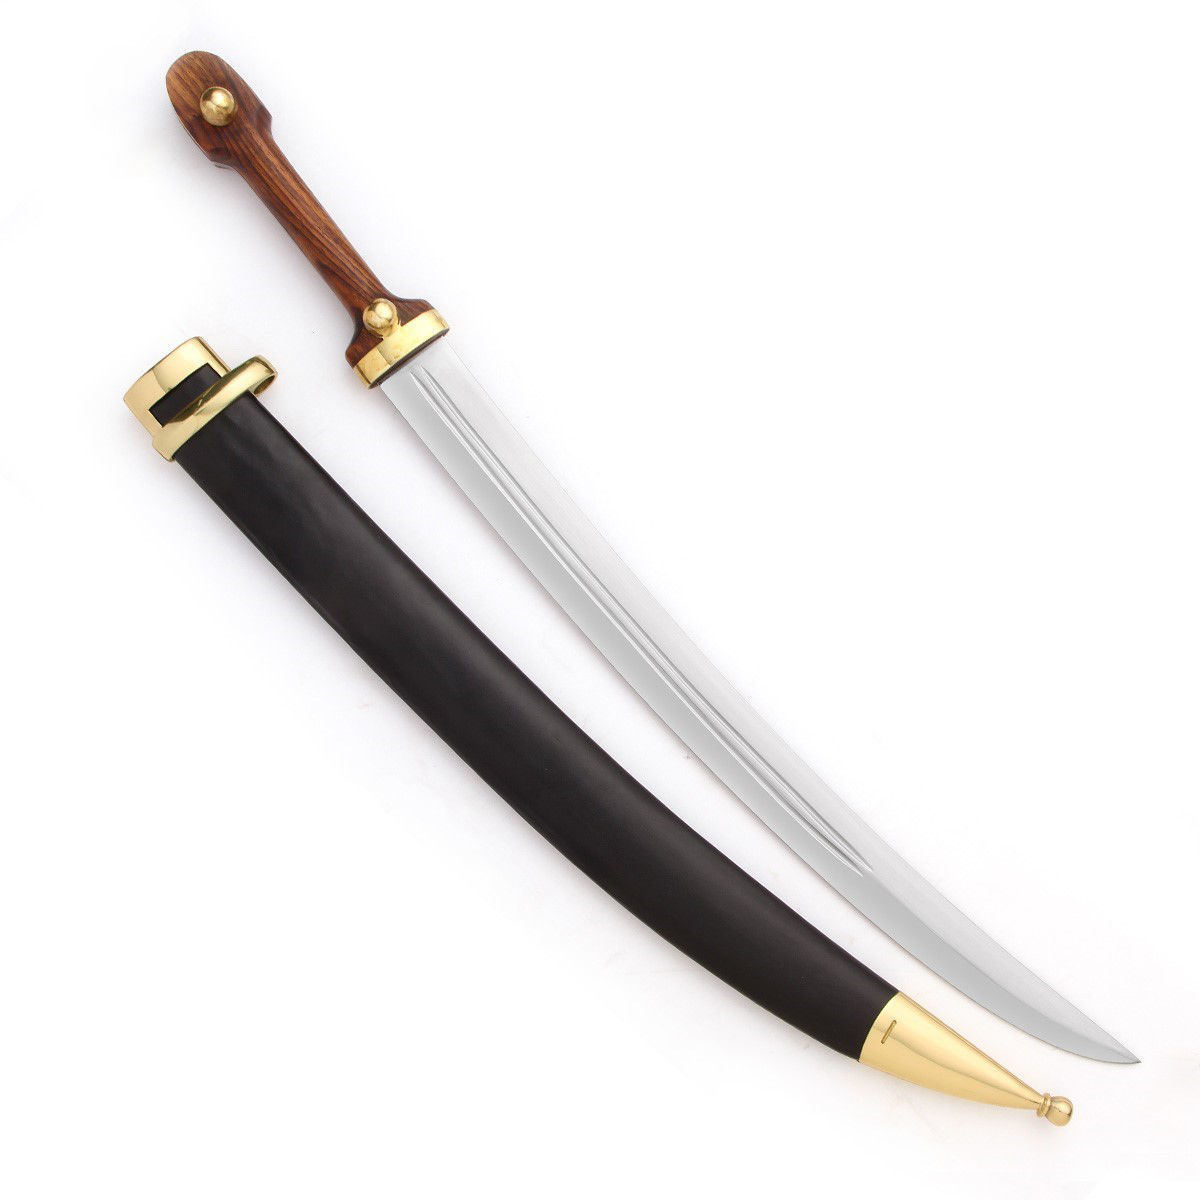 Russian Kindjal with Scabbard